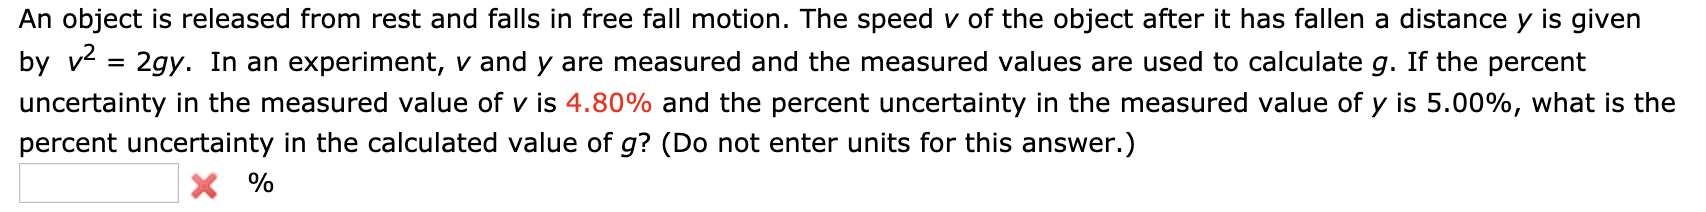 An object is released from rest and falls in free fall motion. The speed v of the object after it has fallen a distance y is given by v 2gy. In an experiment, v and y are measured and the measured values are used to calculate g. If the percent uncertainty in the measured value of v is 4.80% and the percent uncertainty in the measured value of y is 5.00%, what is the percent uncertainty in the calculated value of g? (Do not enter units for this answer.) X%